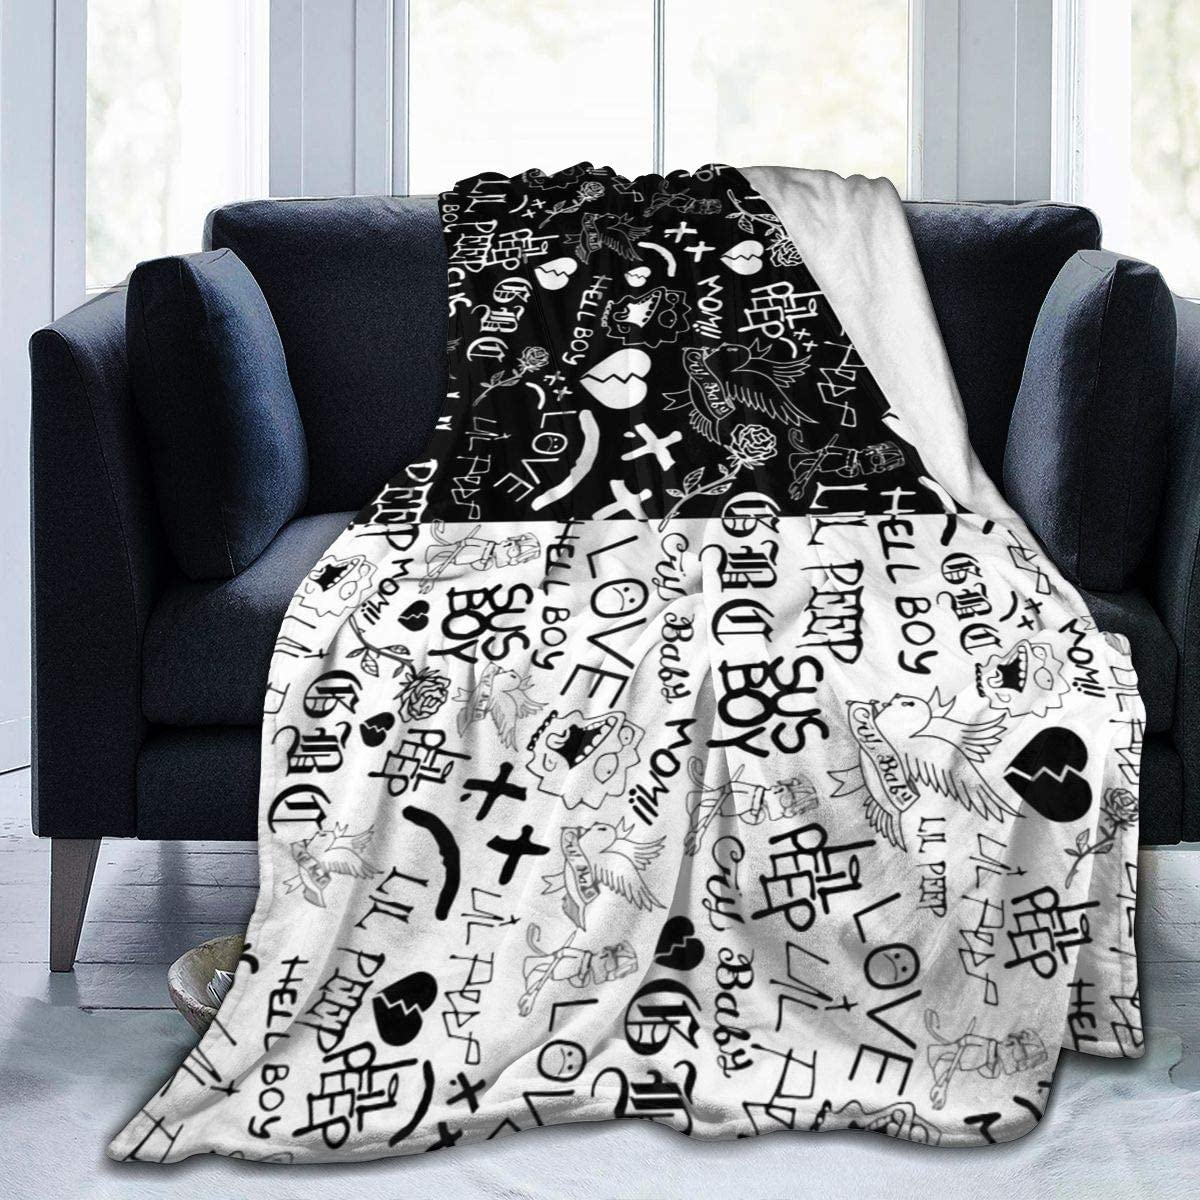 Special price for a limited time Sale Special Price JLOVE Lil Peep Blanket Soft Micro Throw Fleece Couc Cozy